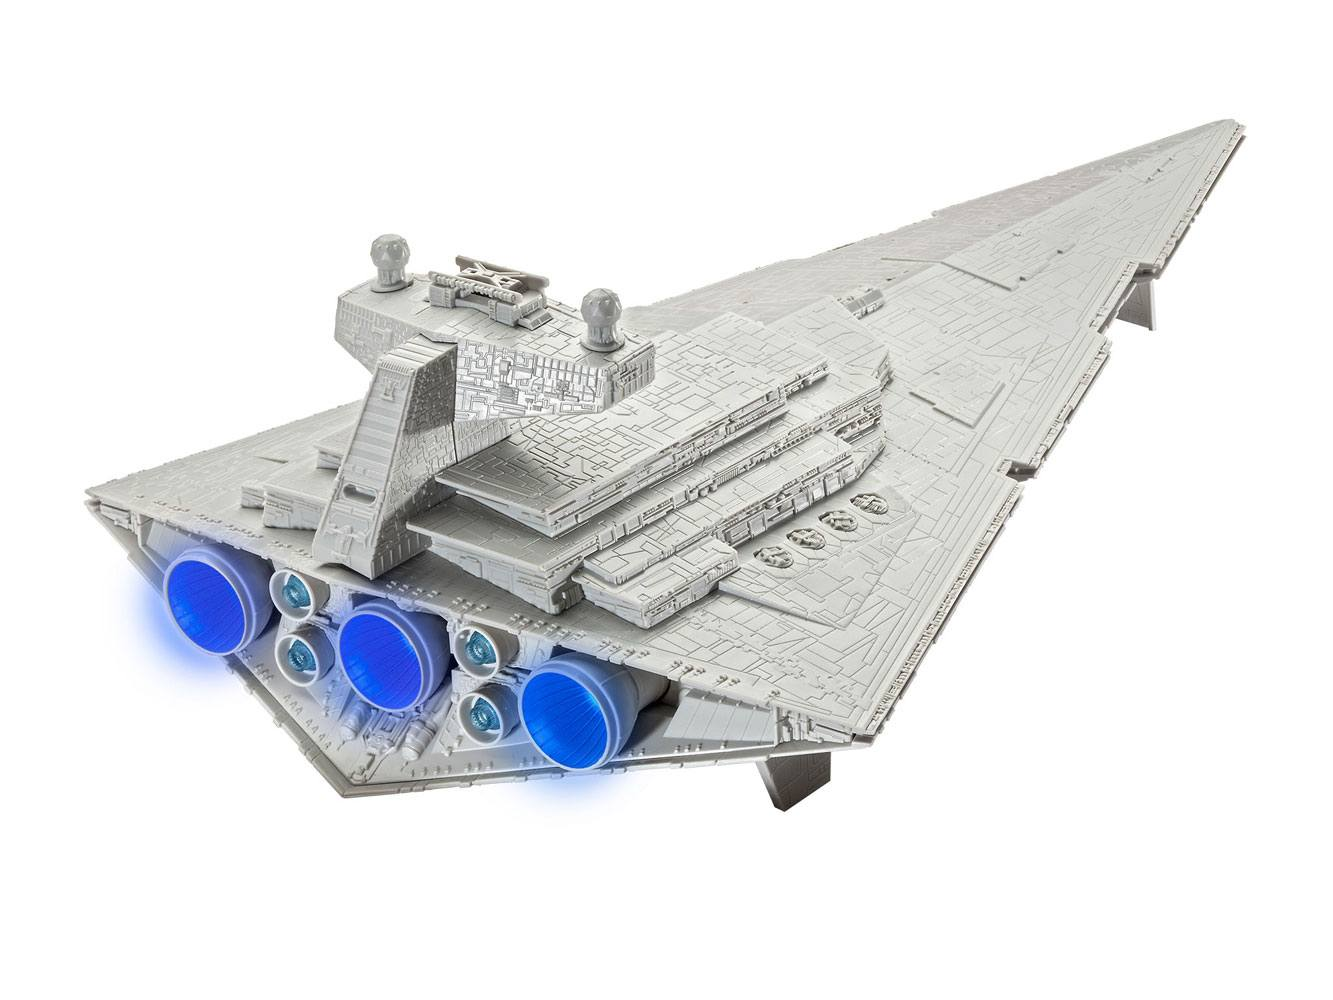 Star Wars Build & Play Model Kit with Sound & Light Up 1/4000 Imperial Star Destroyer